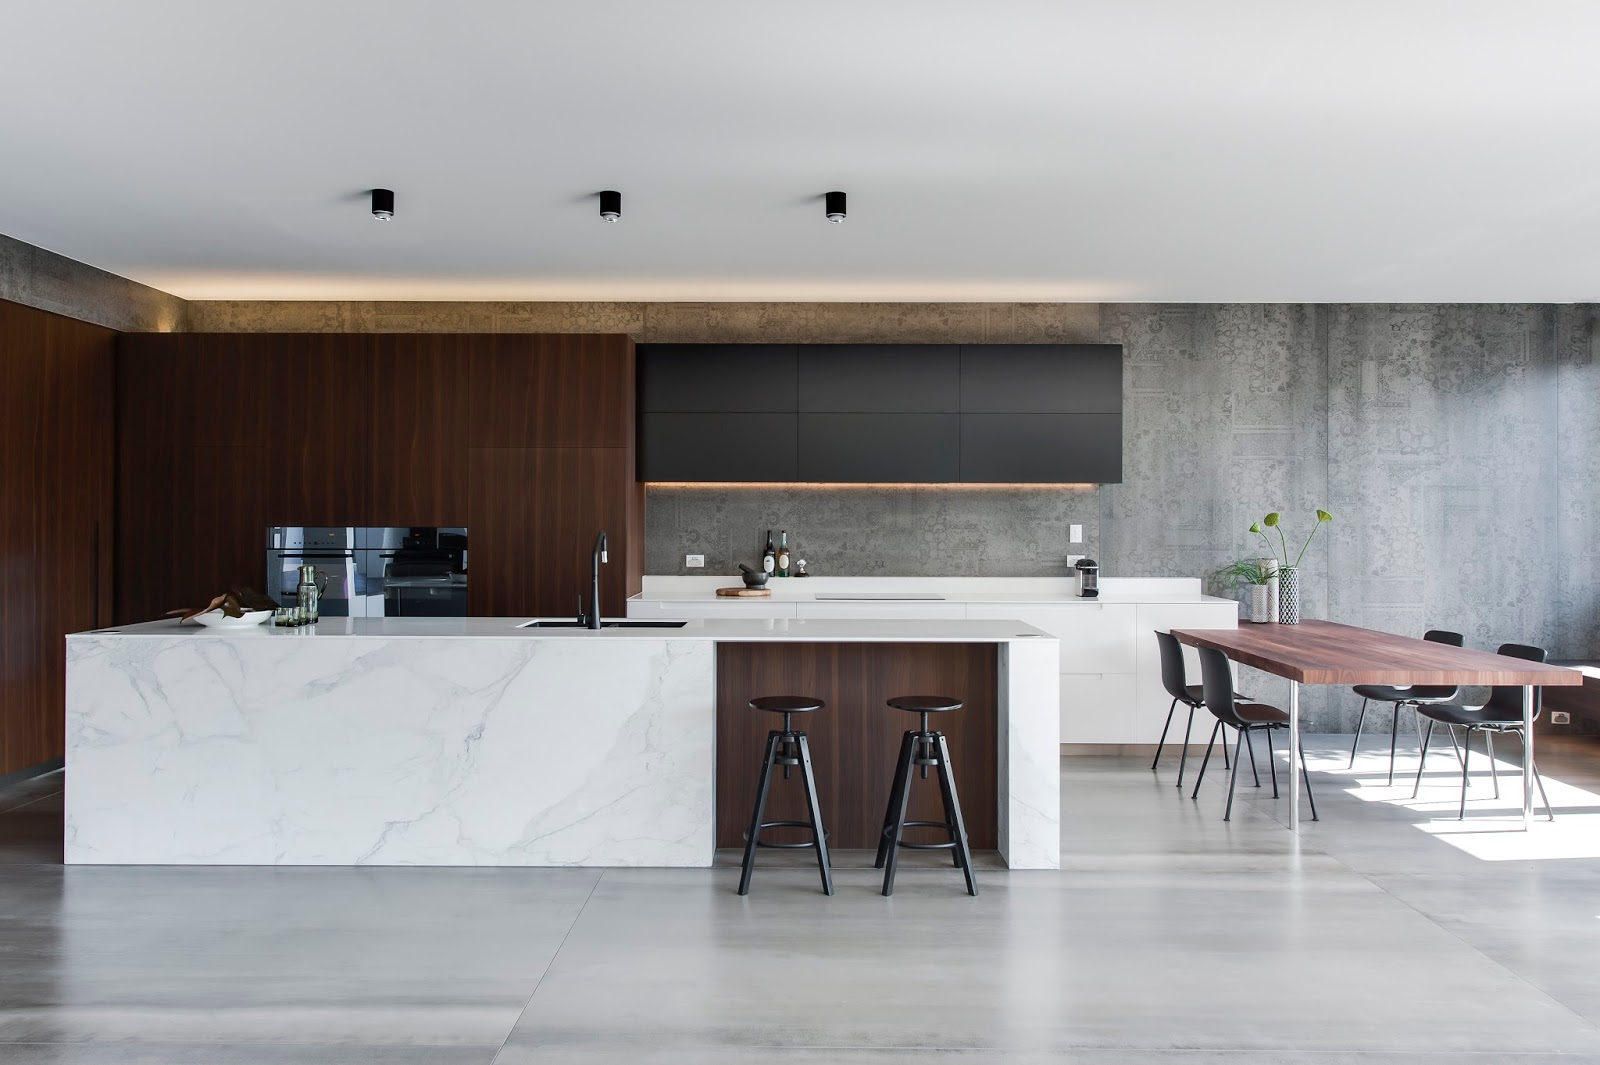 Merveilleux Amazing Kitchen Design Leaves Us With House Envy